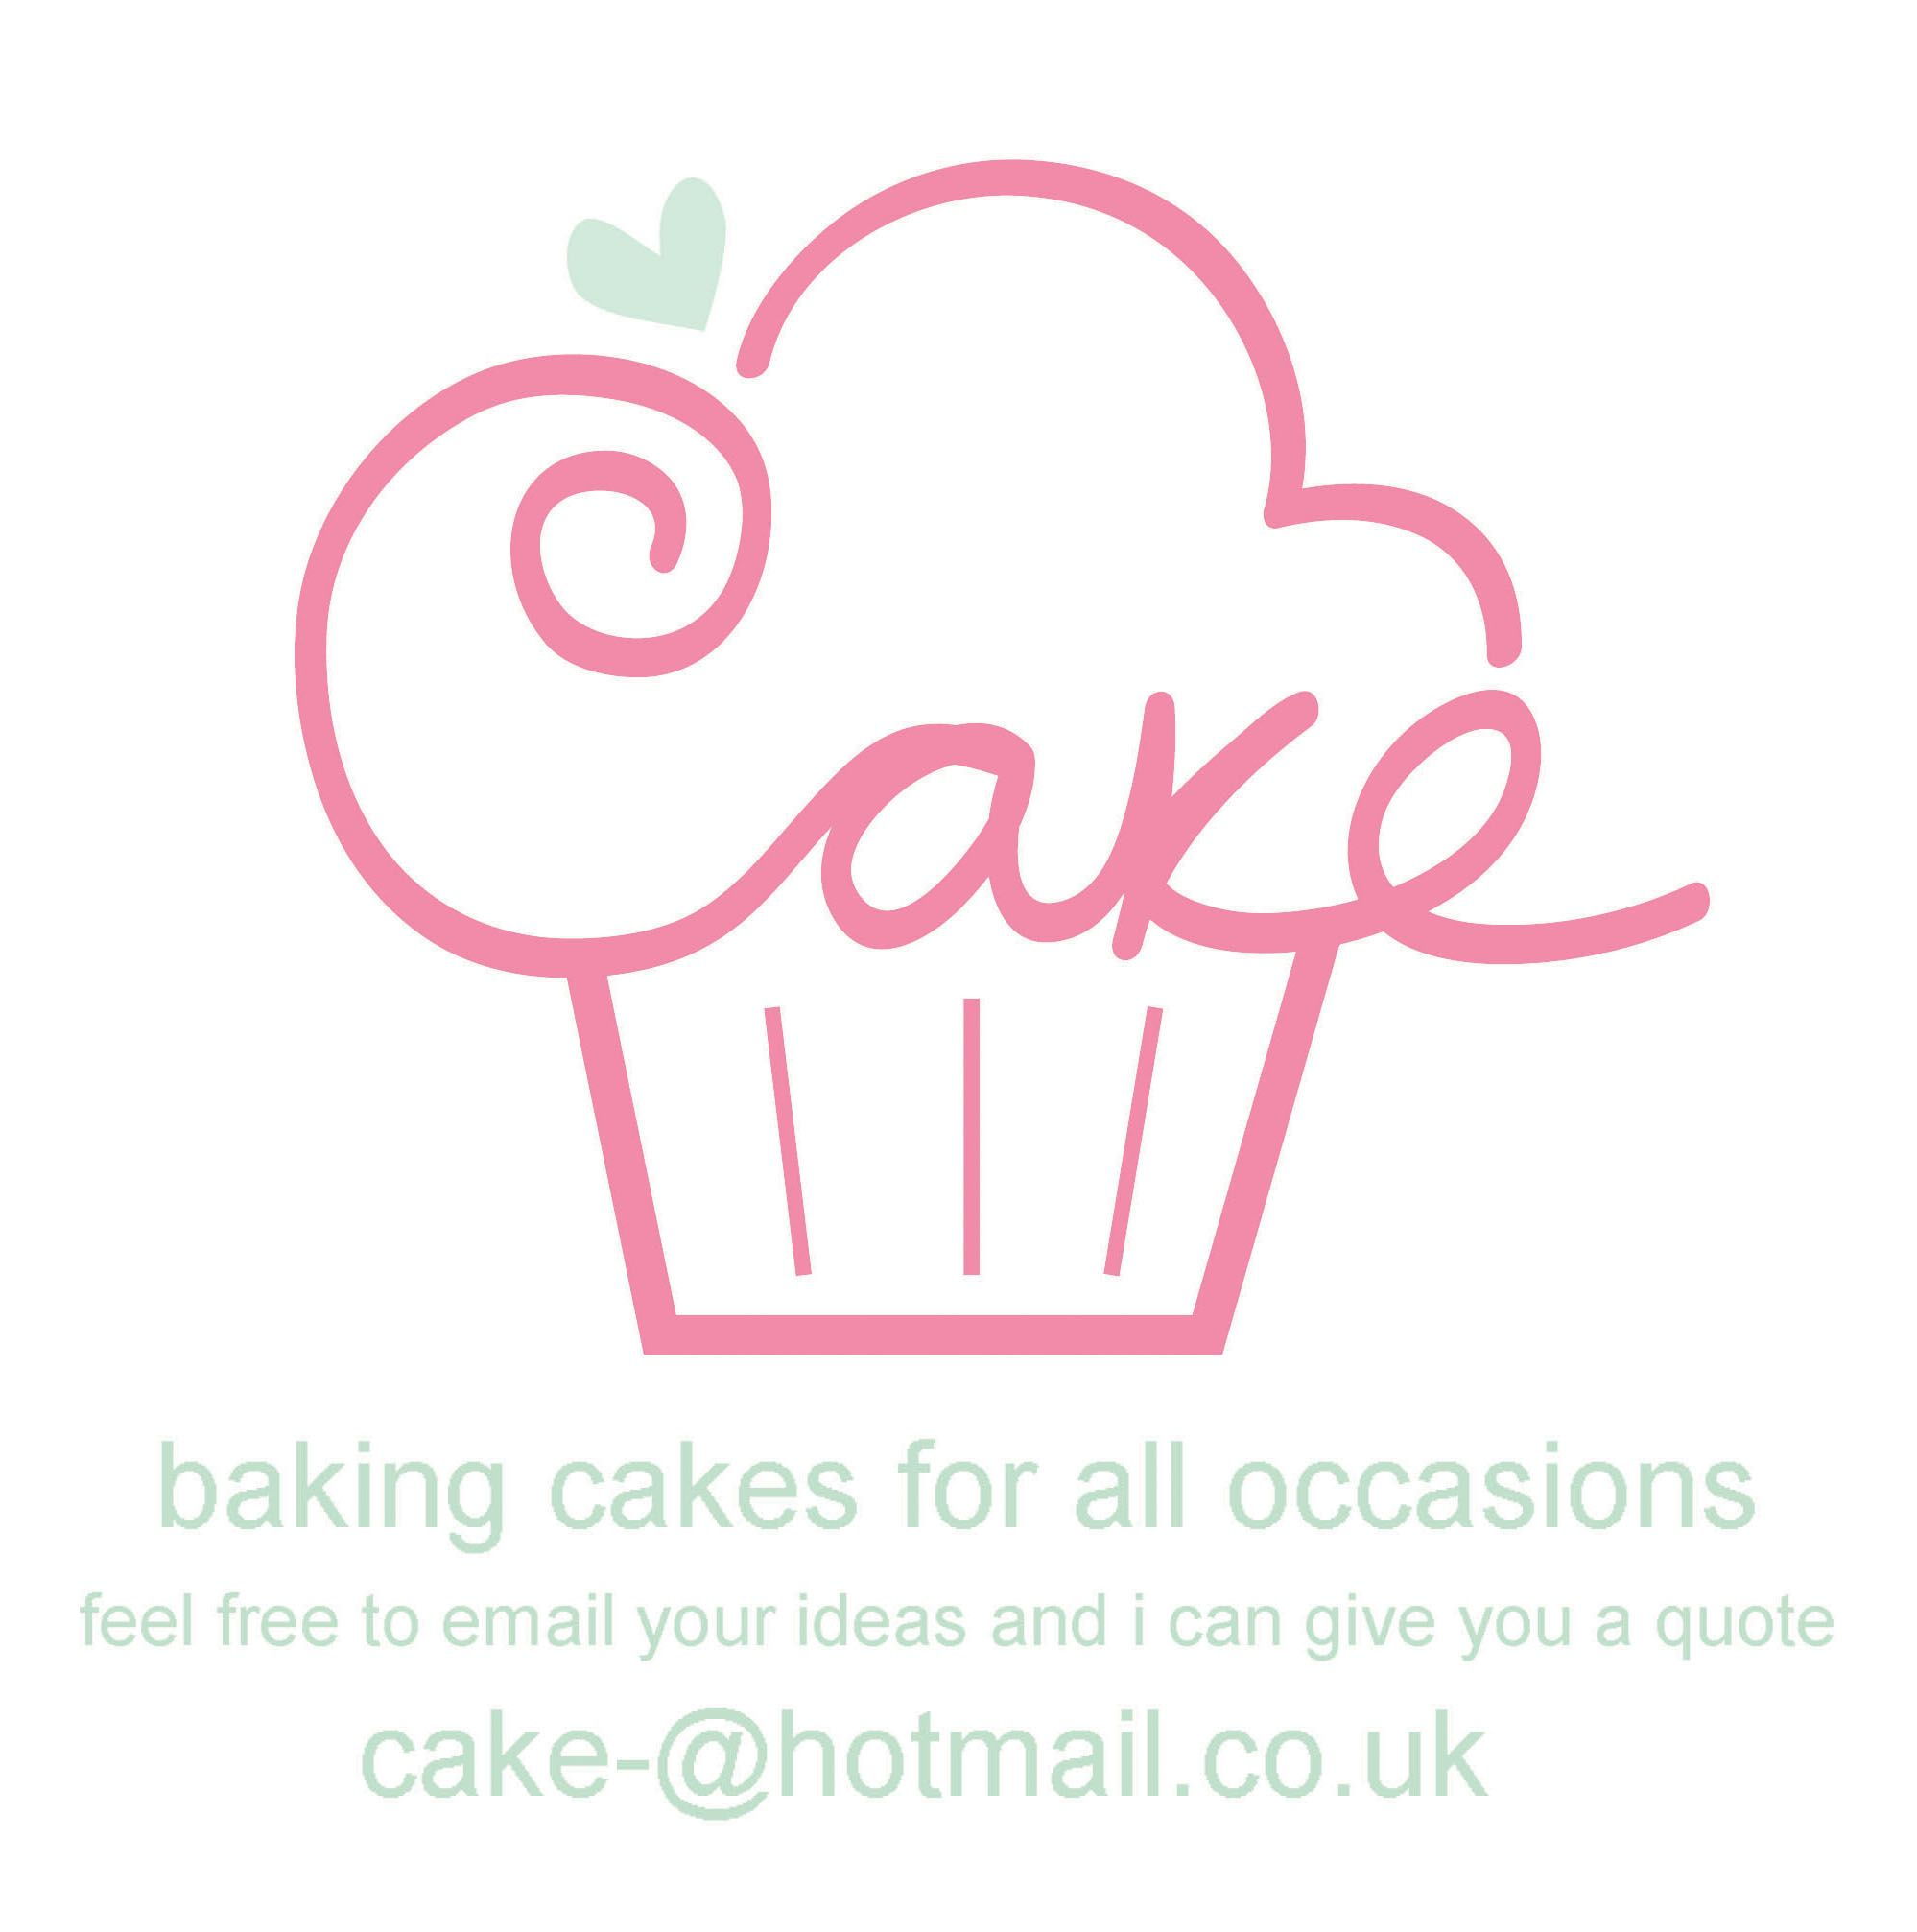 New cake logo from the beginning cake logo business for Logo suggestions free